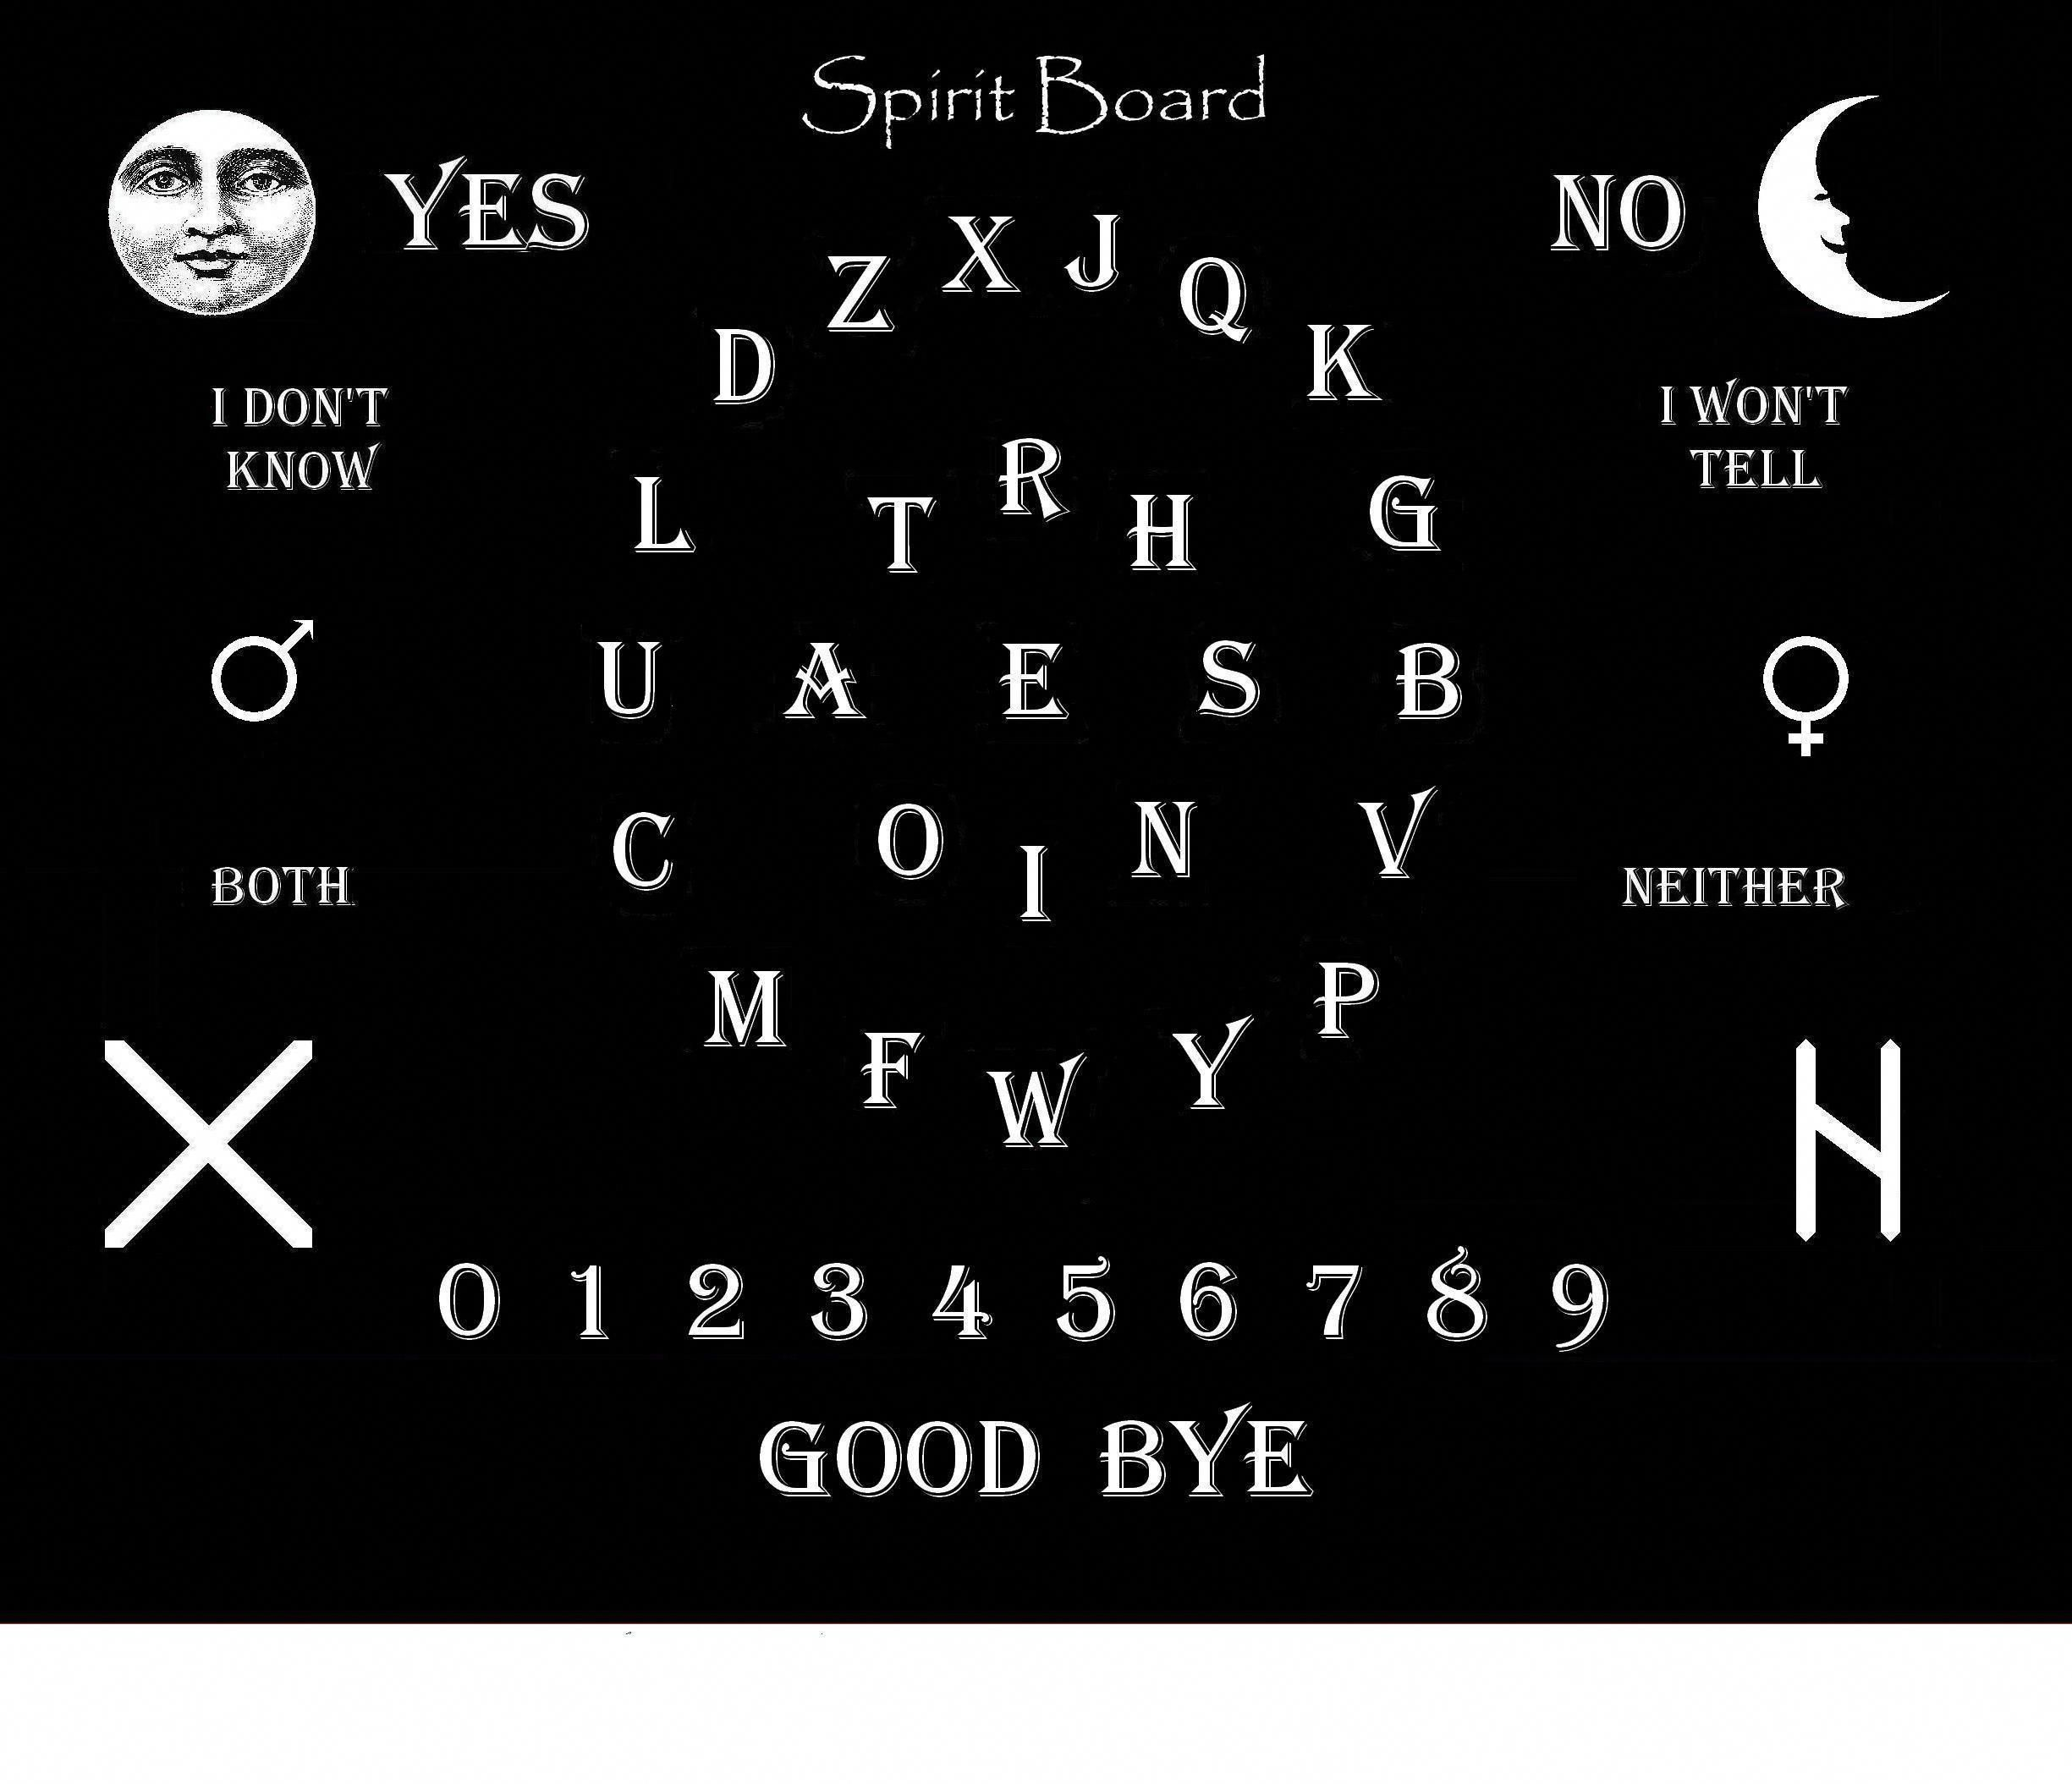 Making Your Own Spirit Board - PaganSpace net The Social